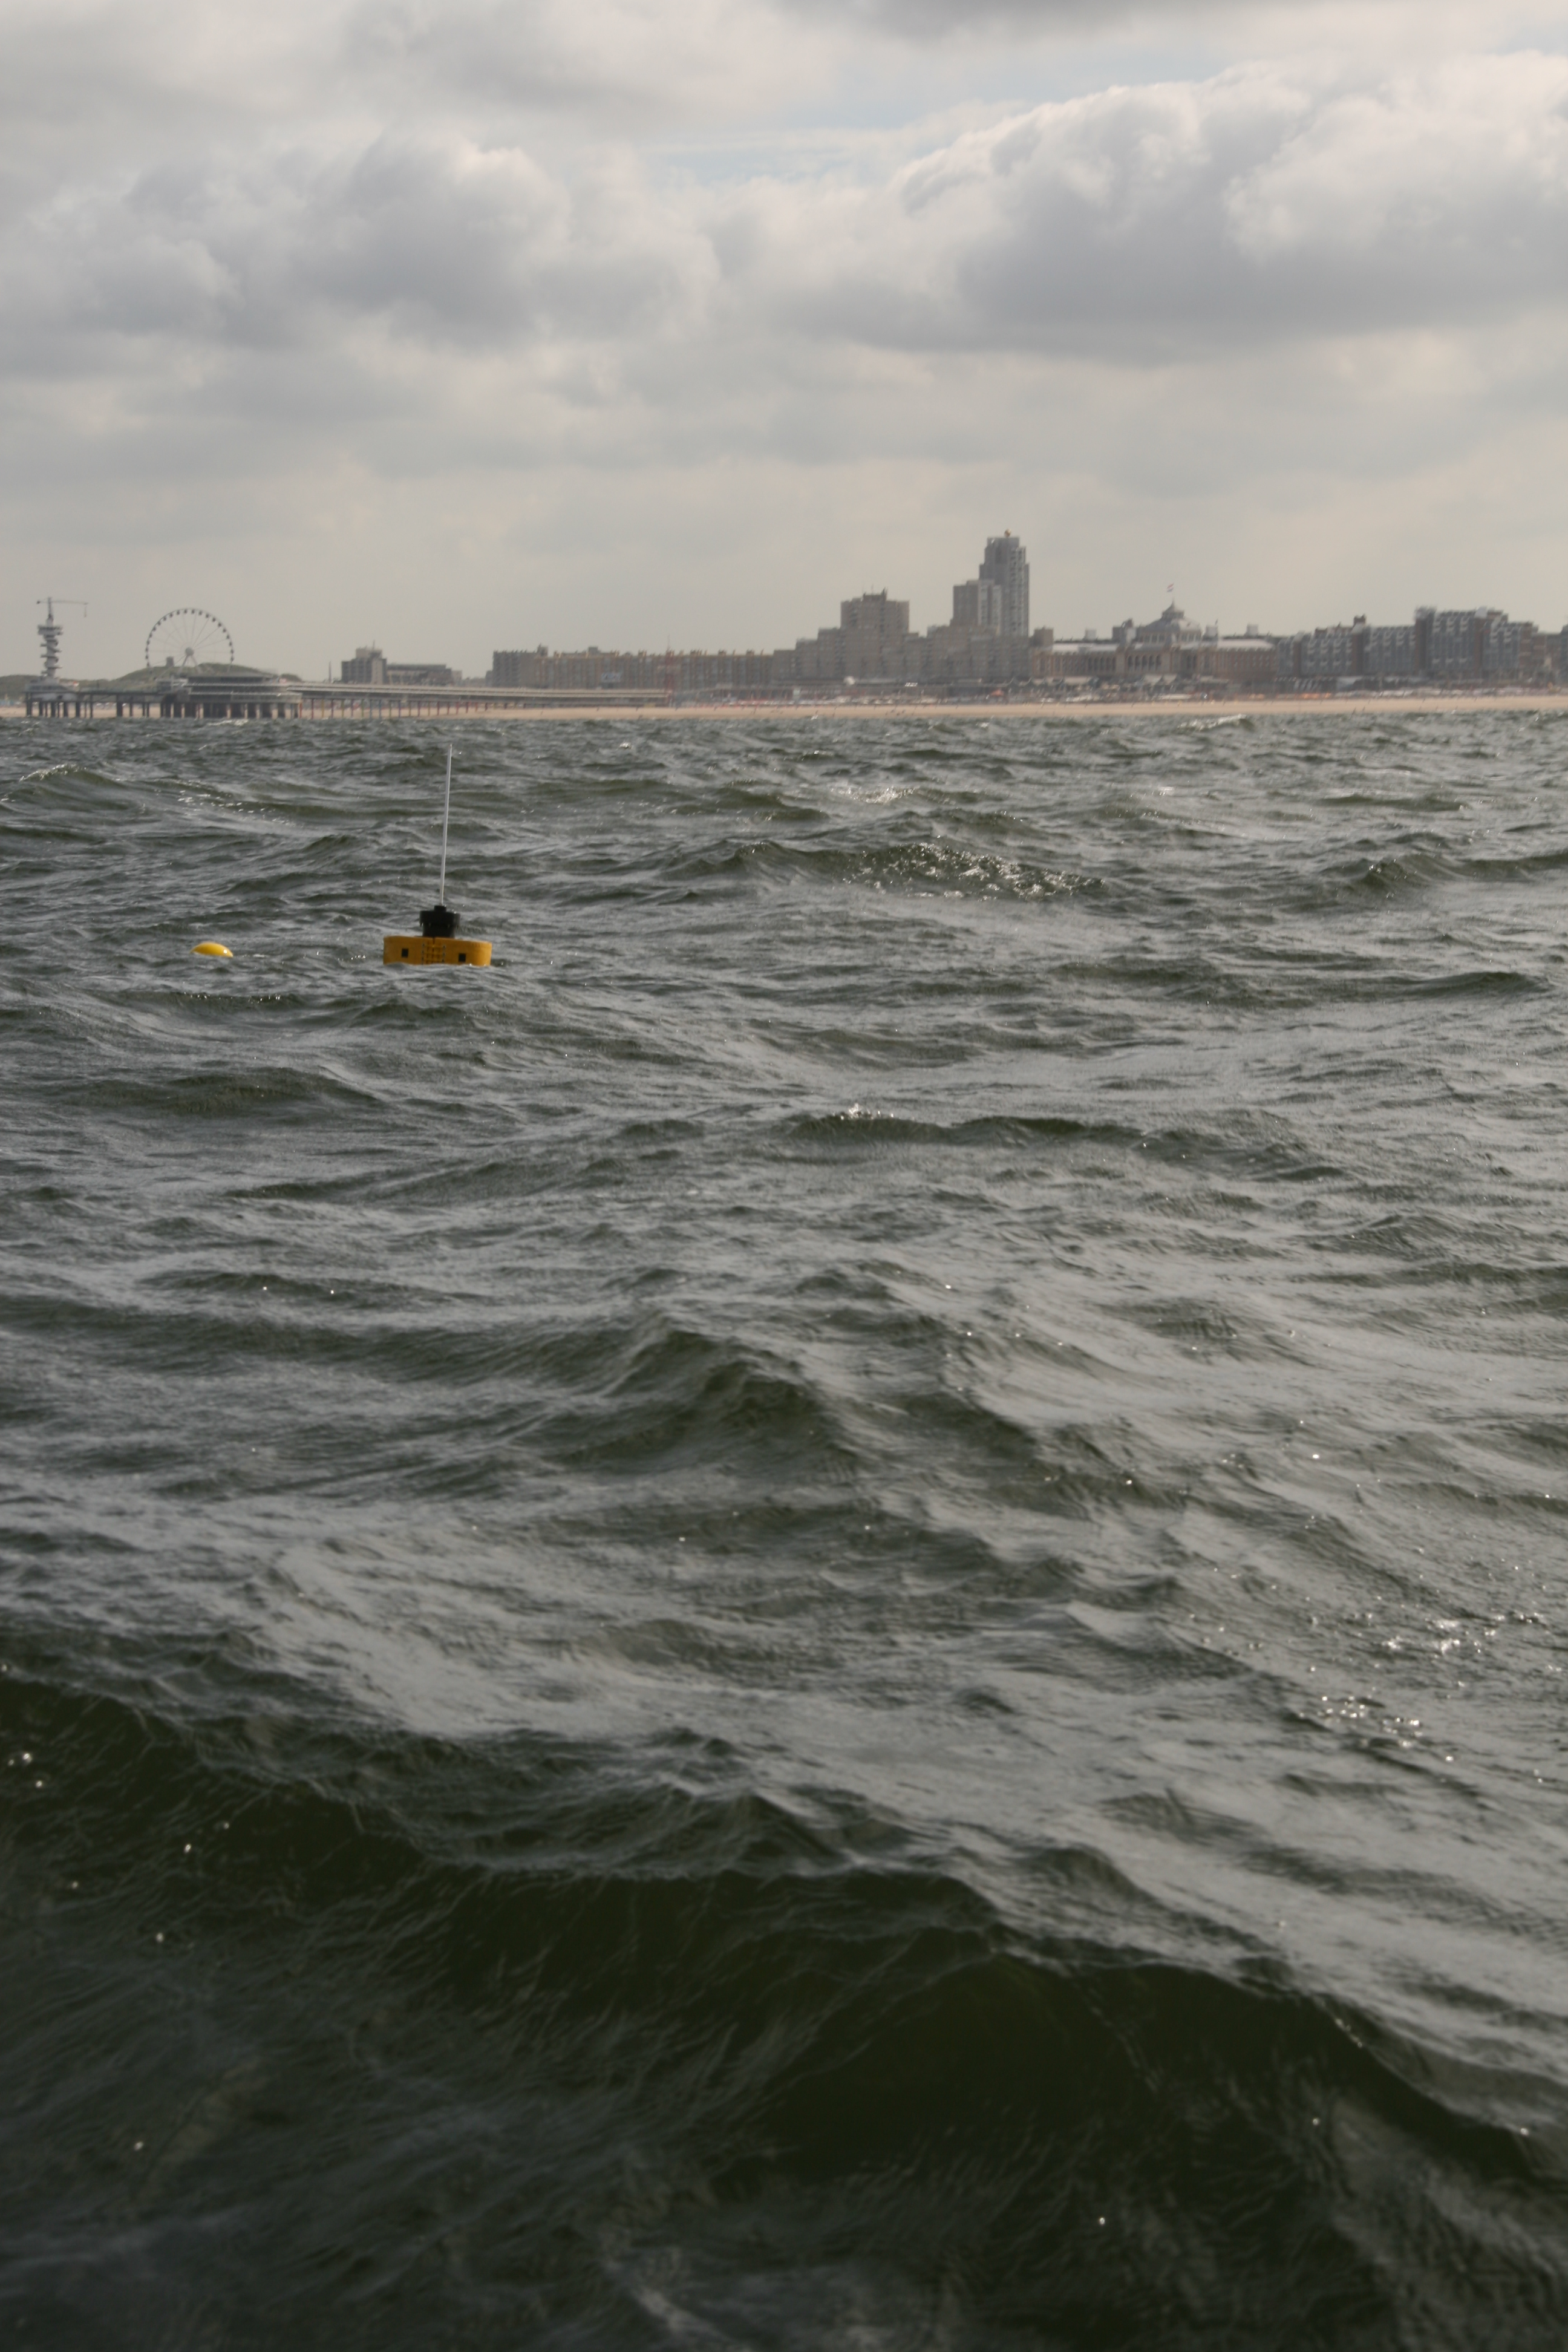 Measuring the waves with a smartphone